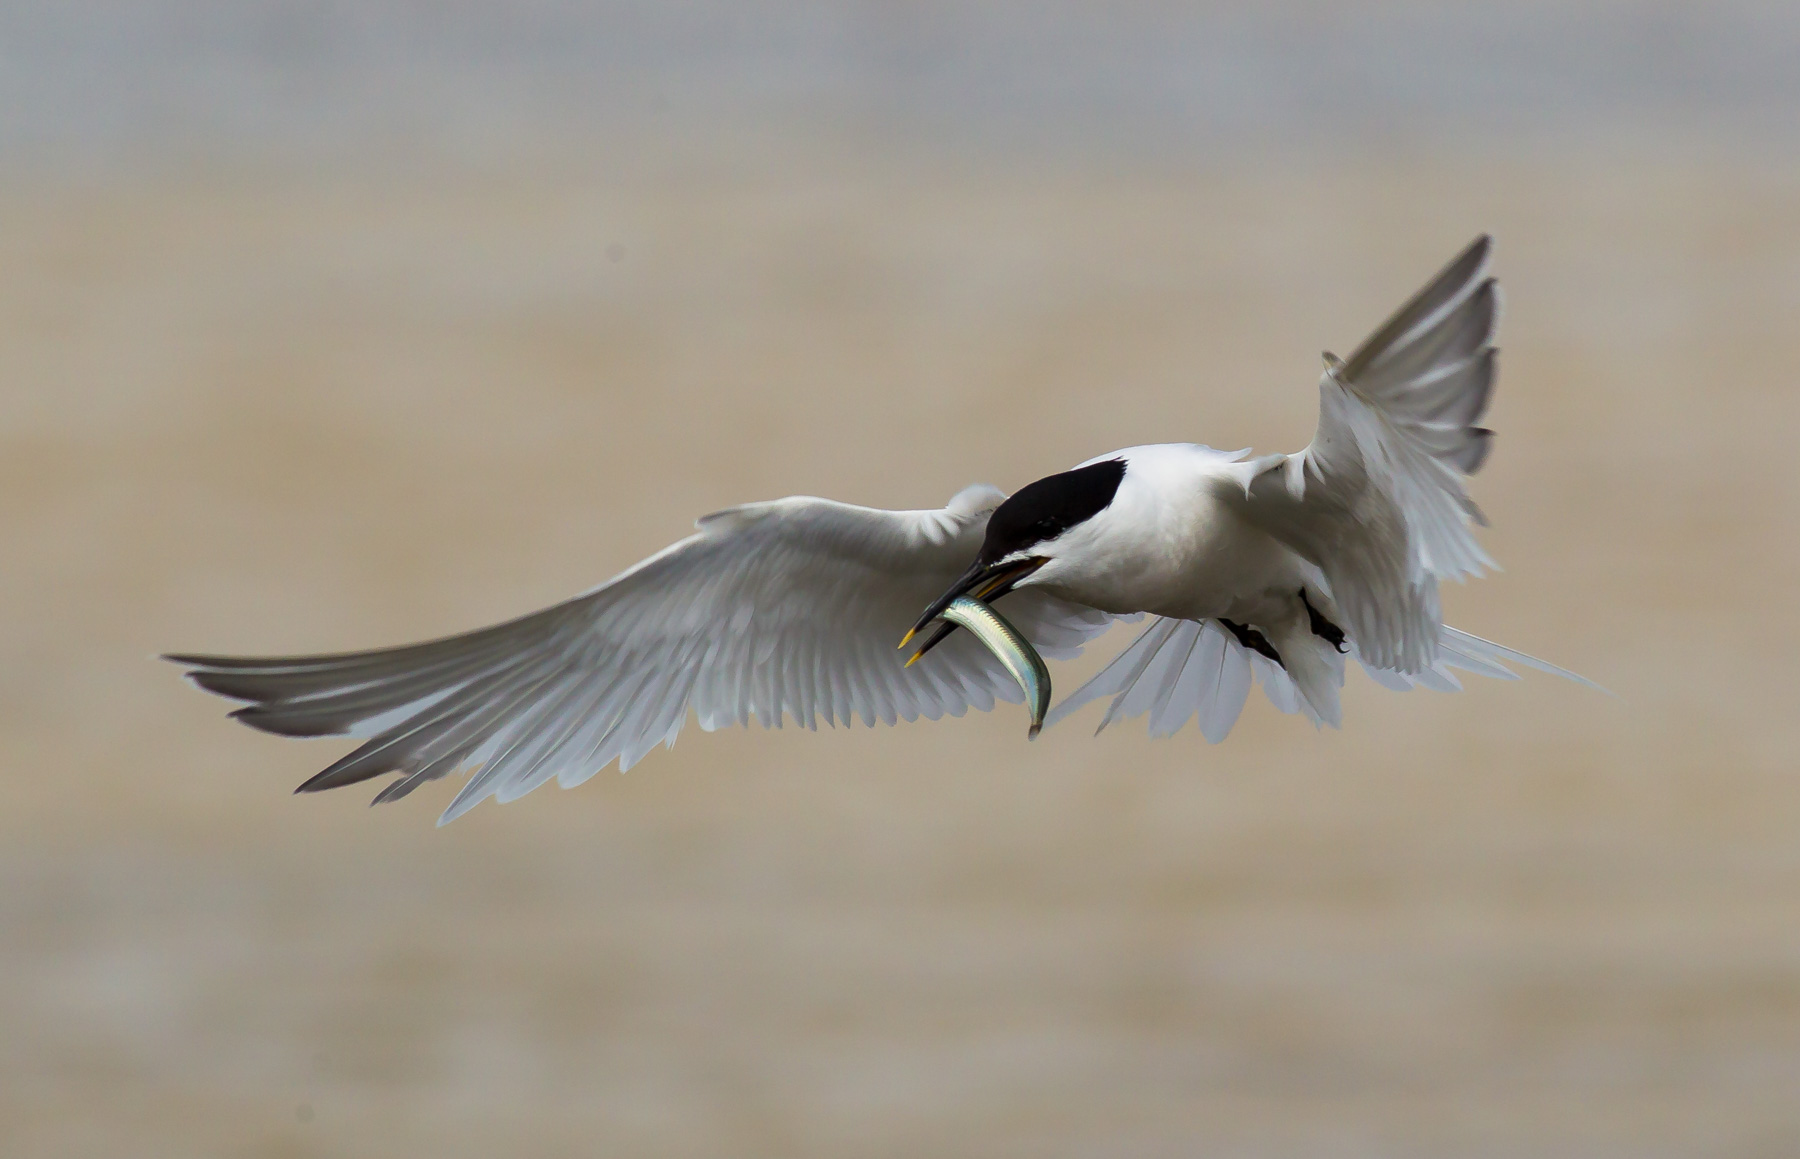 Sandwich terns are among the birds the new protections aim to help (Natural England/PA)